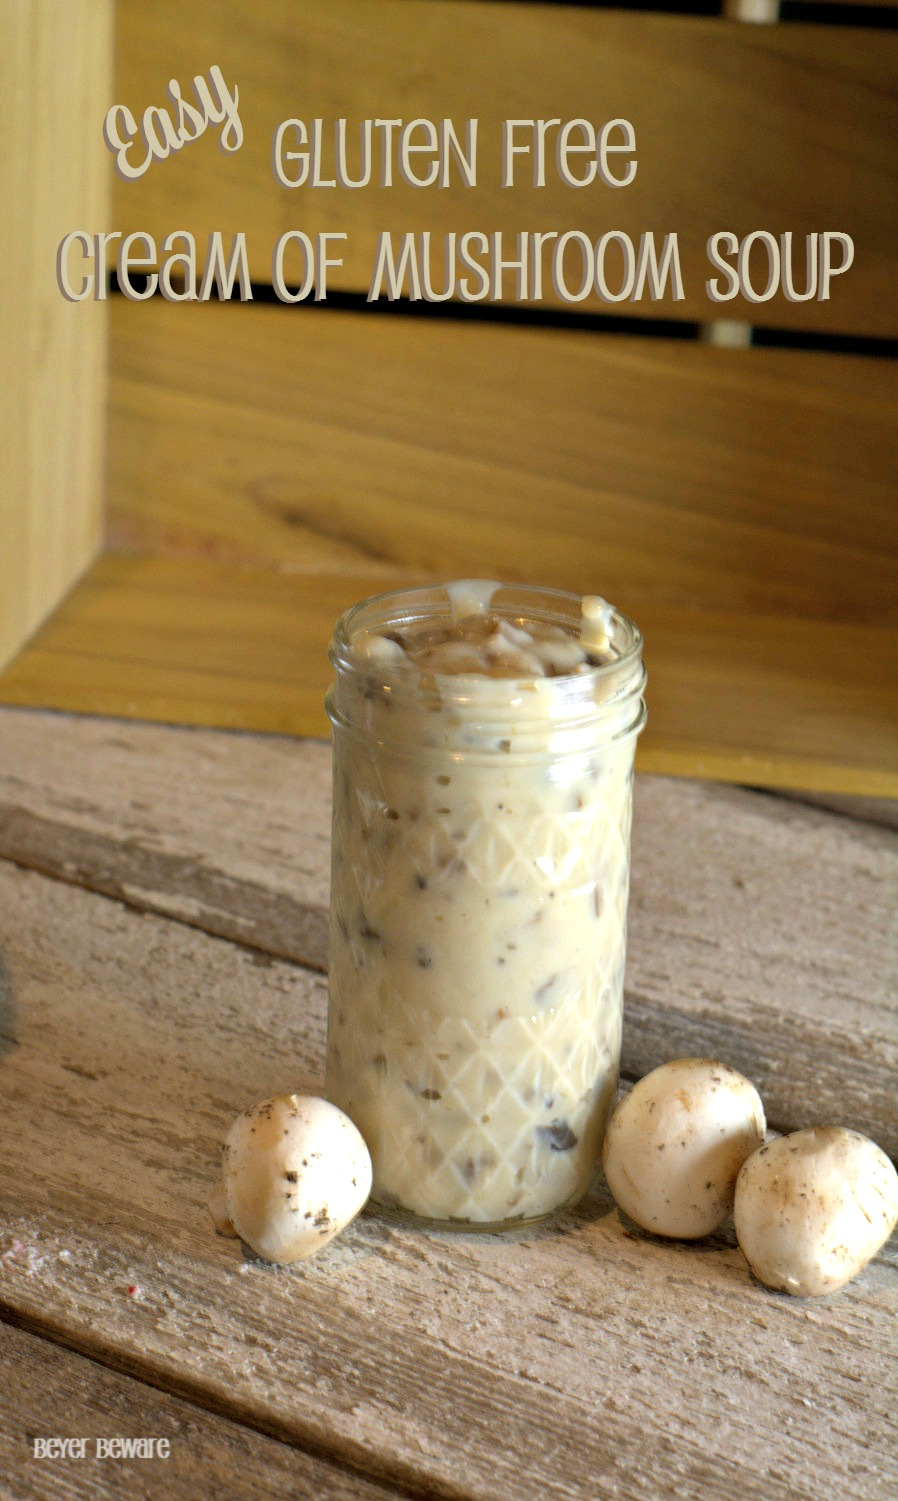 This easy Gluten Free Cream of Mushroom Soup recipe is now a staple in my cooking for any recipe that calls for cream of mushroom soup.